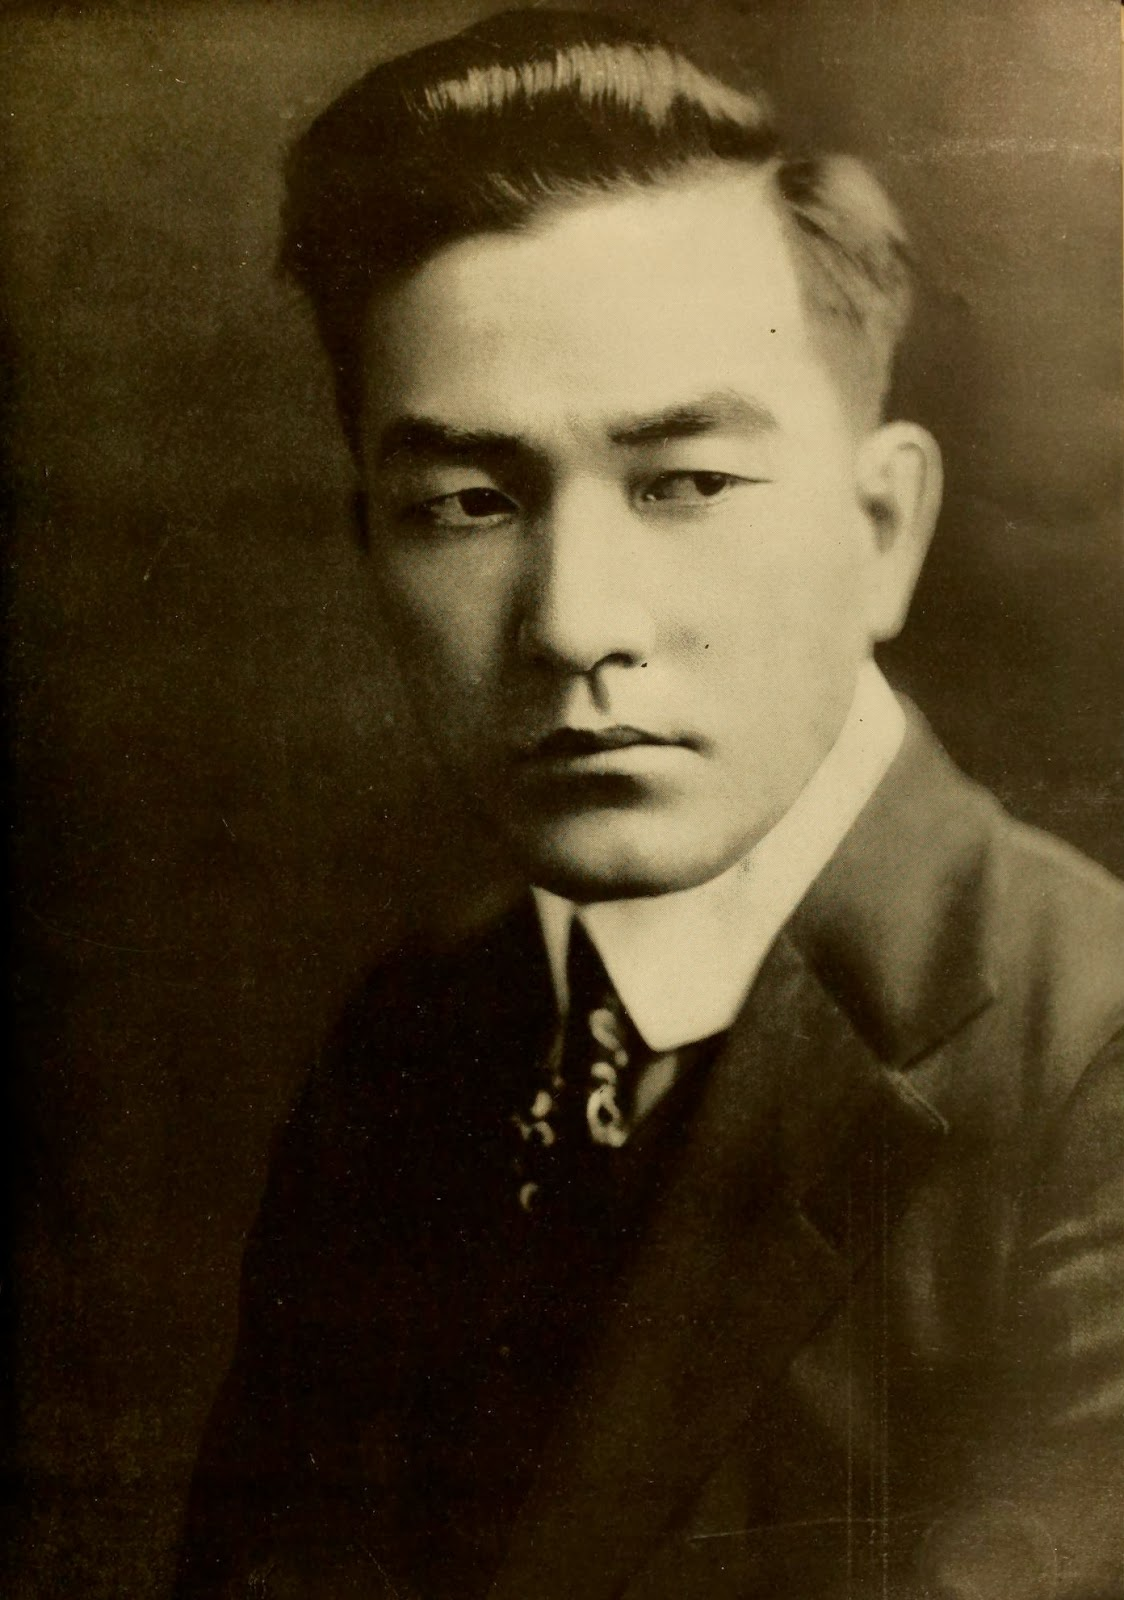 james shigeta biojames shigeta wife, james shigeta movies, james shigeta imdb, james shigeta cause of death, james shigeta actor, james shigeta spouse, james shigeta marriage, james shigeta mulan, james shigeta interview, james shigeta bio, james shigeta find a grave, james shigeta family, james shigeta height, james shigeta married, james shigeta gay, james shigeta---marital status, james shigeta is he married, james shigeta obit, james shigeta net worth, james shigeta flower drum song